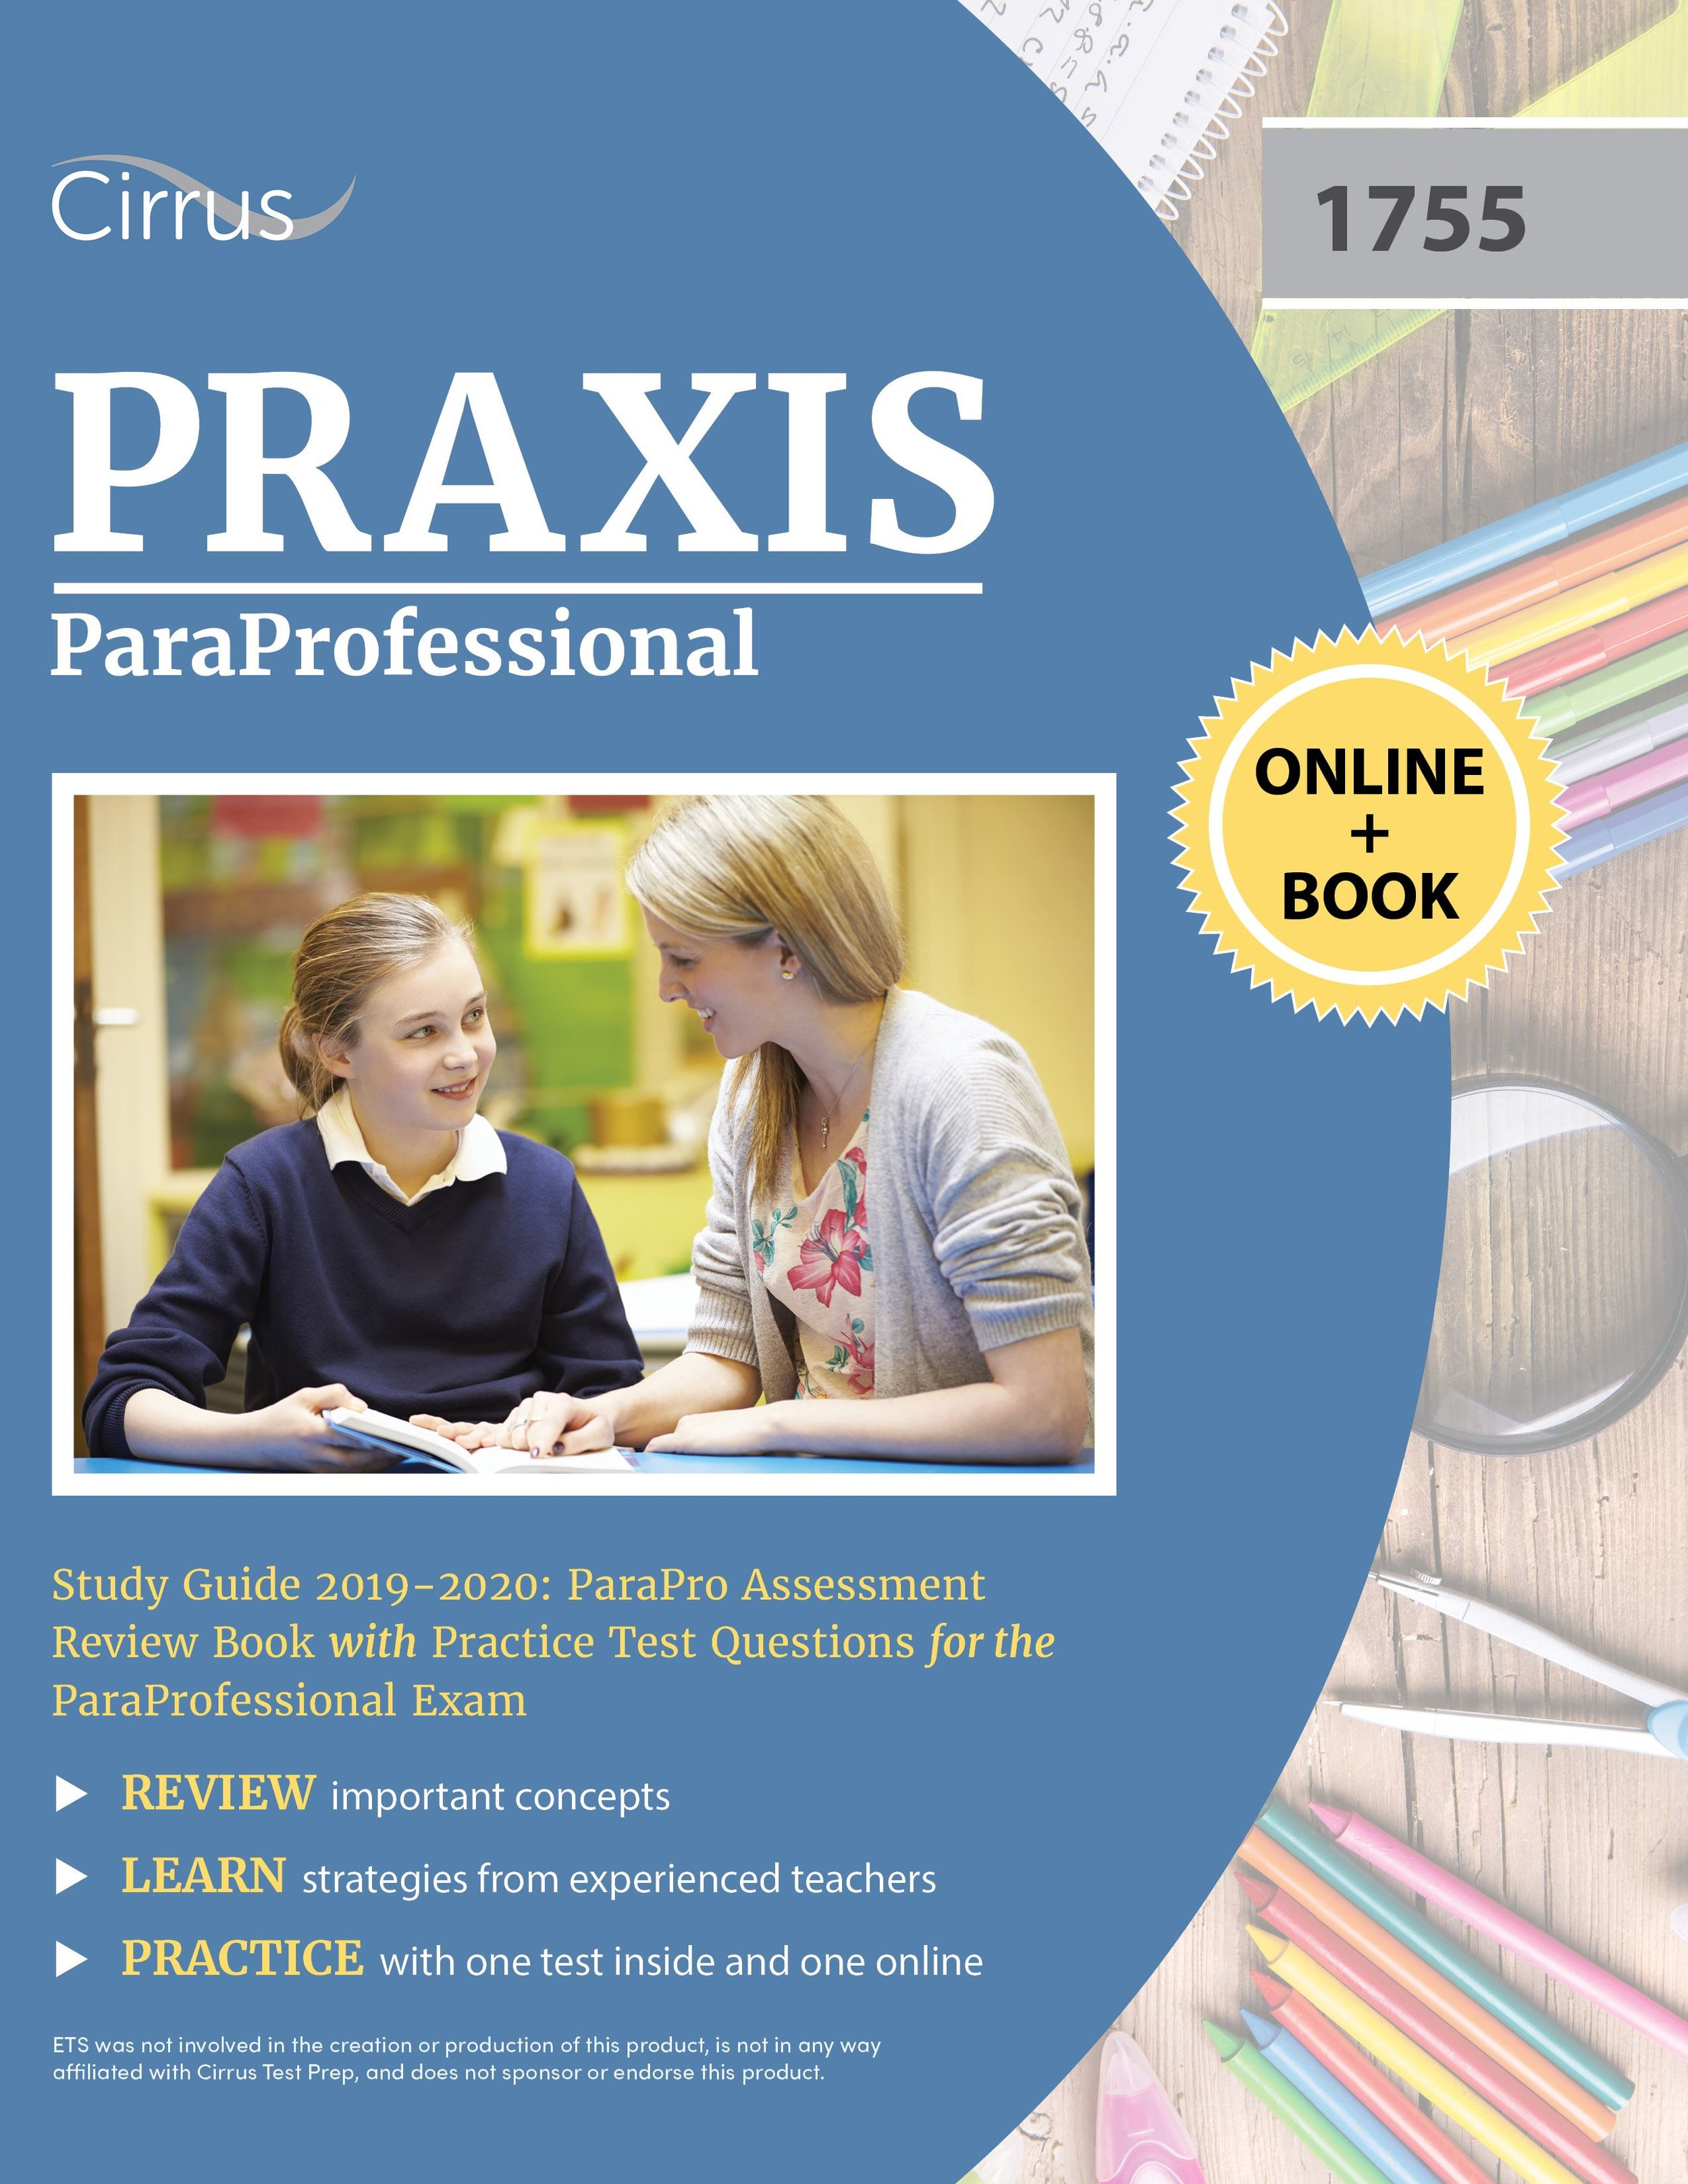 Praxis ParaProfessional Study Guide 2019 – 2020